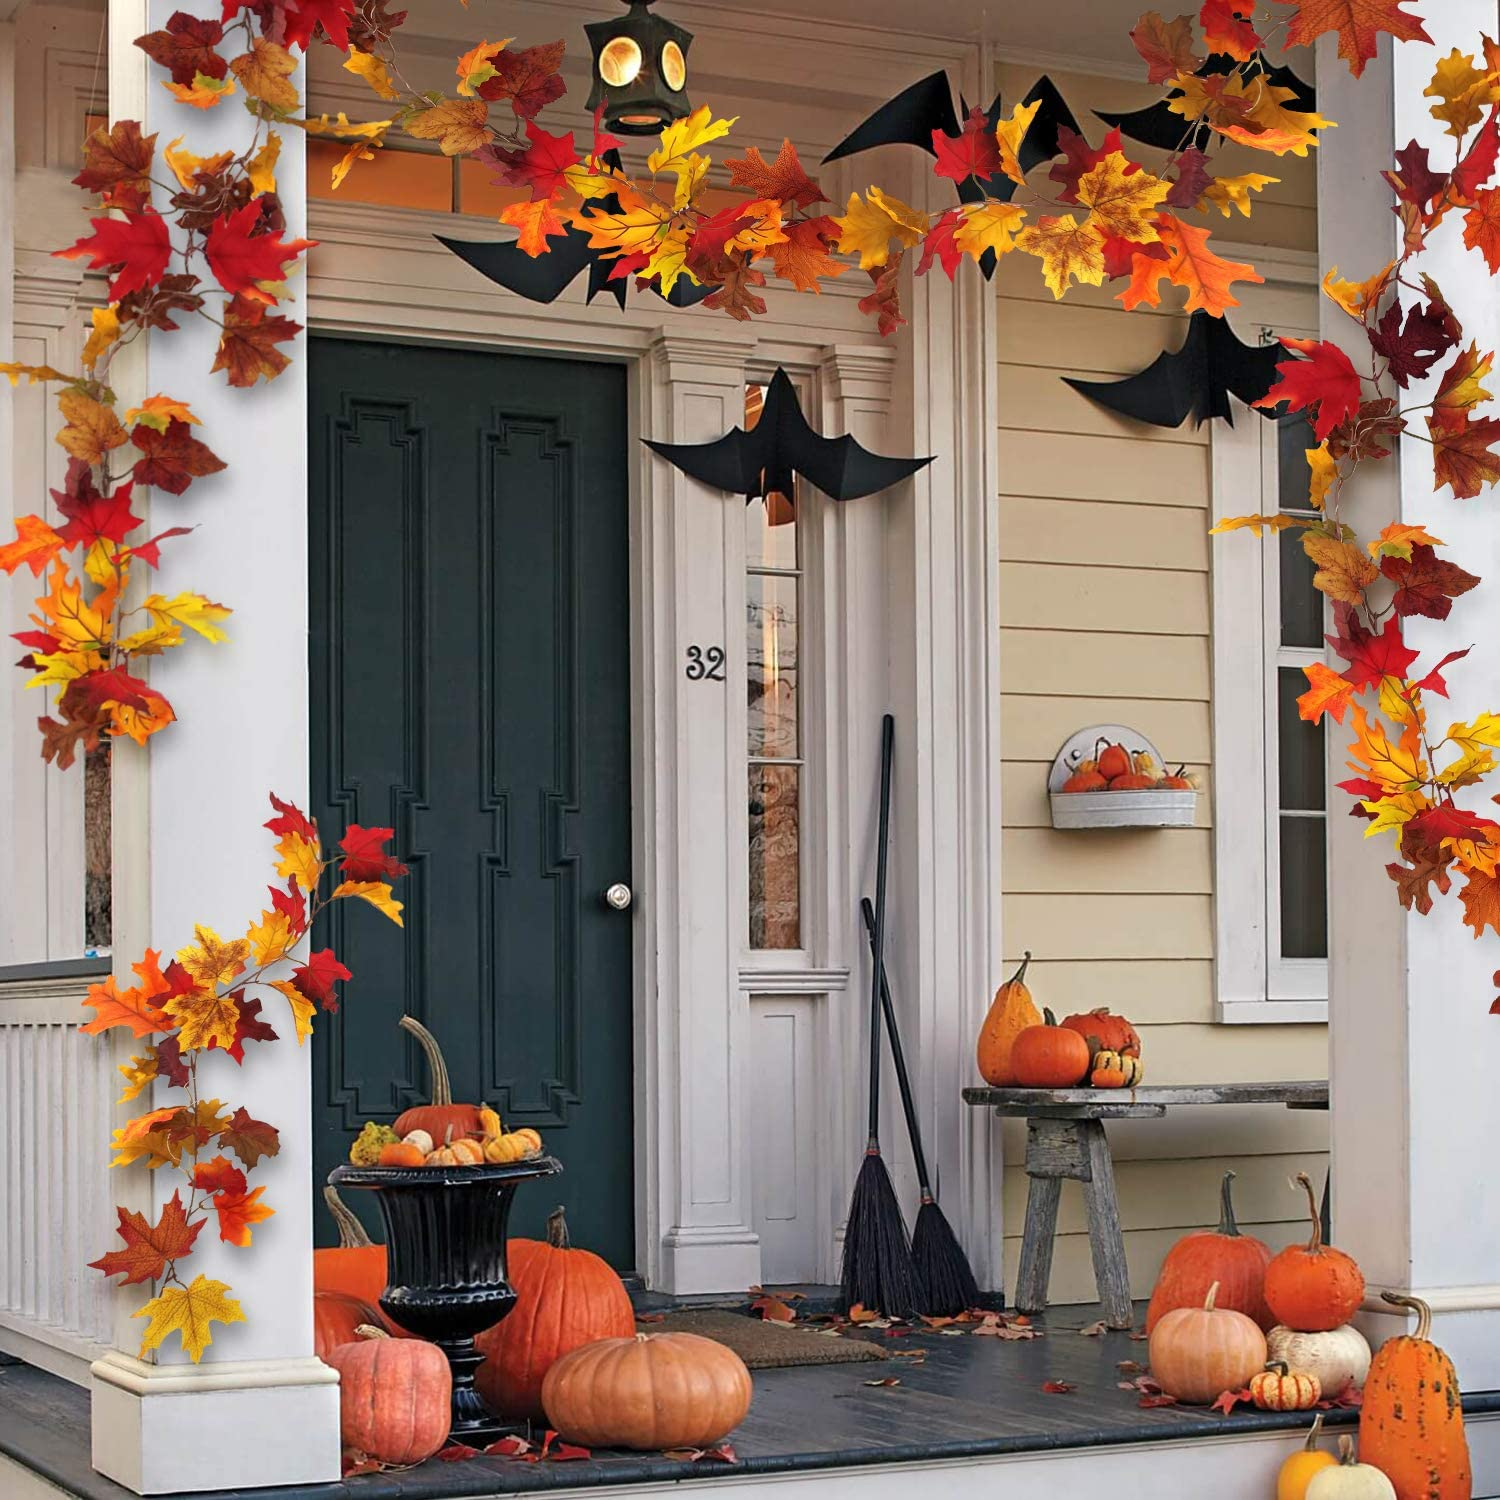 TURNMEON Maples Leaf Fall Garland 7Ft 20LED String Lights Battery Operated Fall Halloween Thanksgivings Decor for Home Indoor Outdoor Party Bedroom Mantel Decorations Warm White